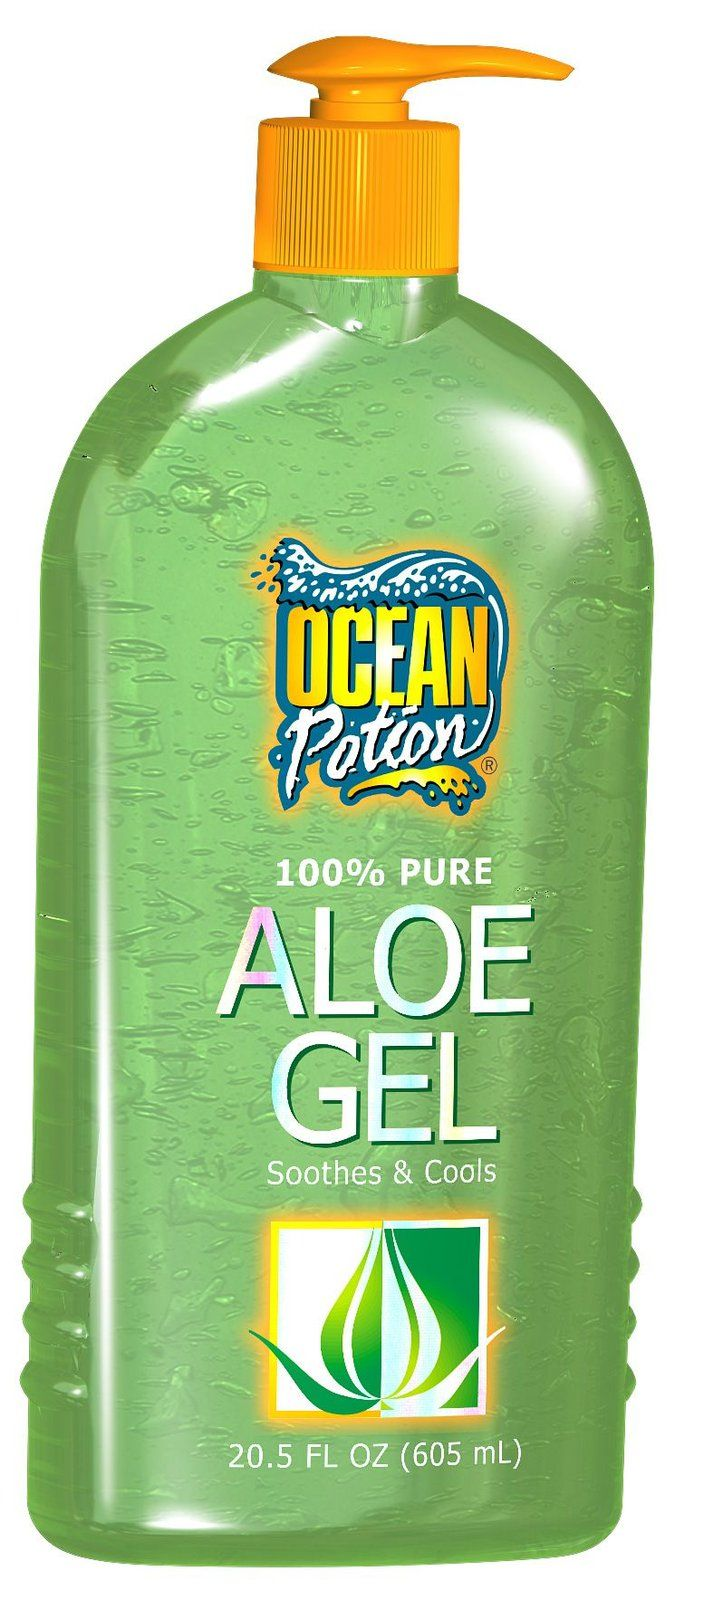 Aloe vera gel as face primer. A few drops smoothed evenly over the face, and let dry, makes a prepped surface for makeup application. And no threat of smothered pore consequences like with silicone primer options. Healthier skin at a fraction of the cost.